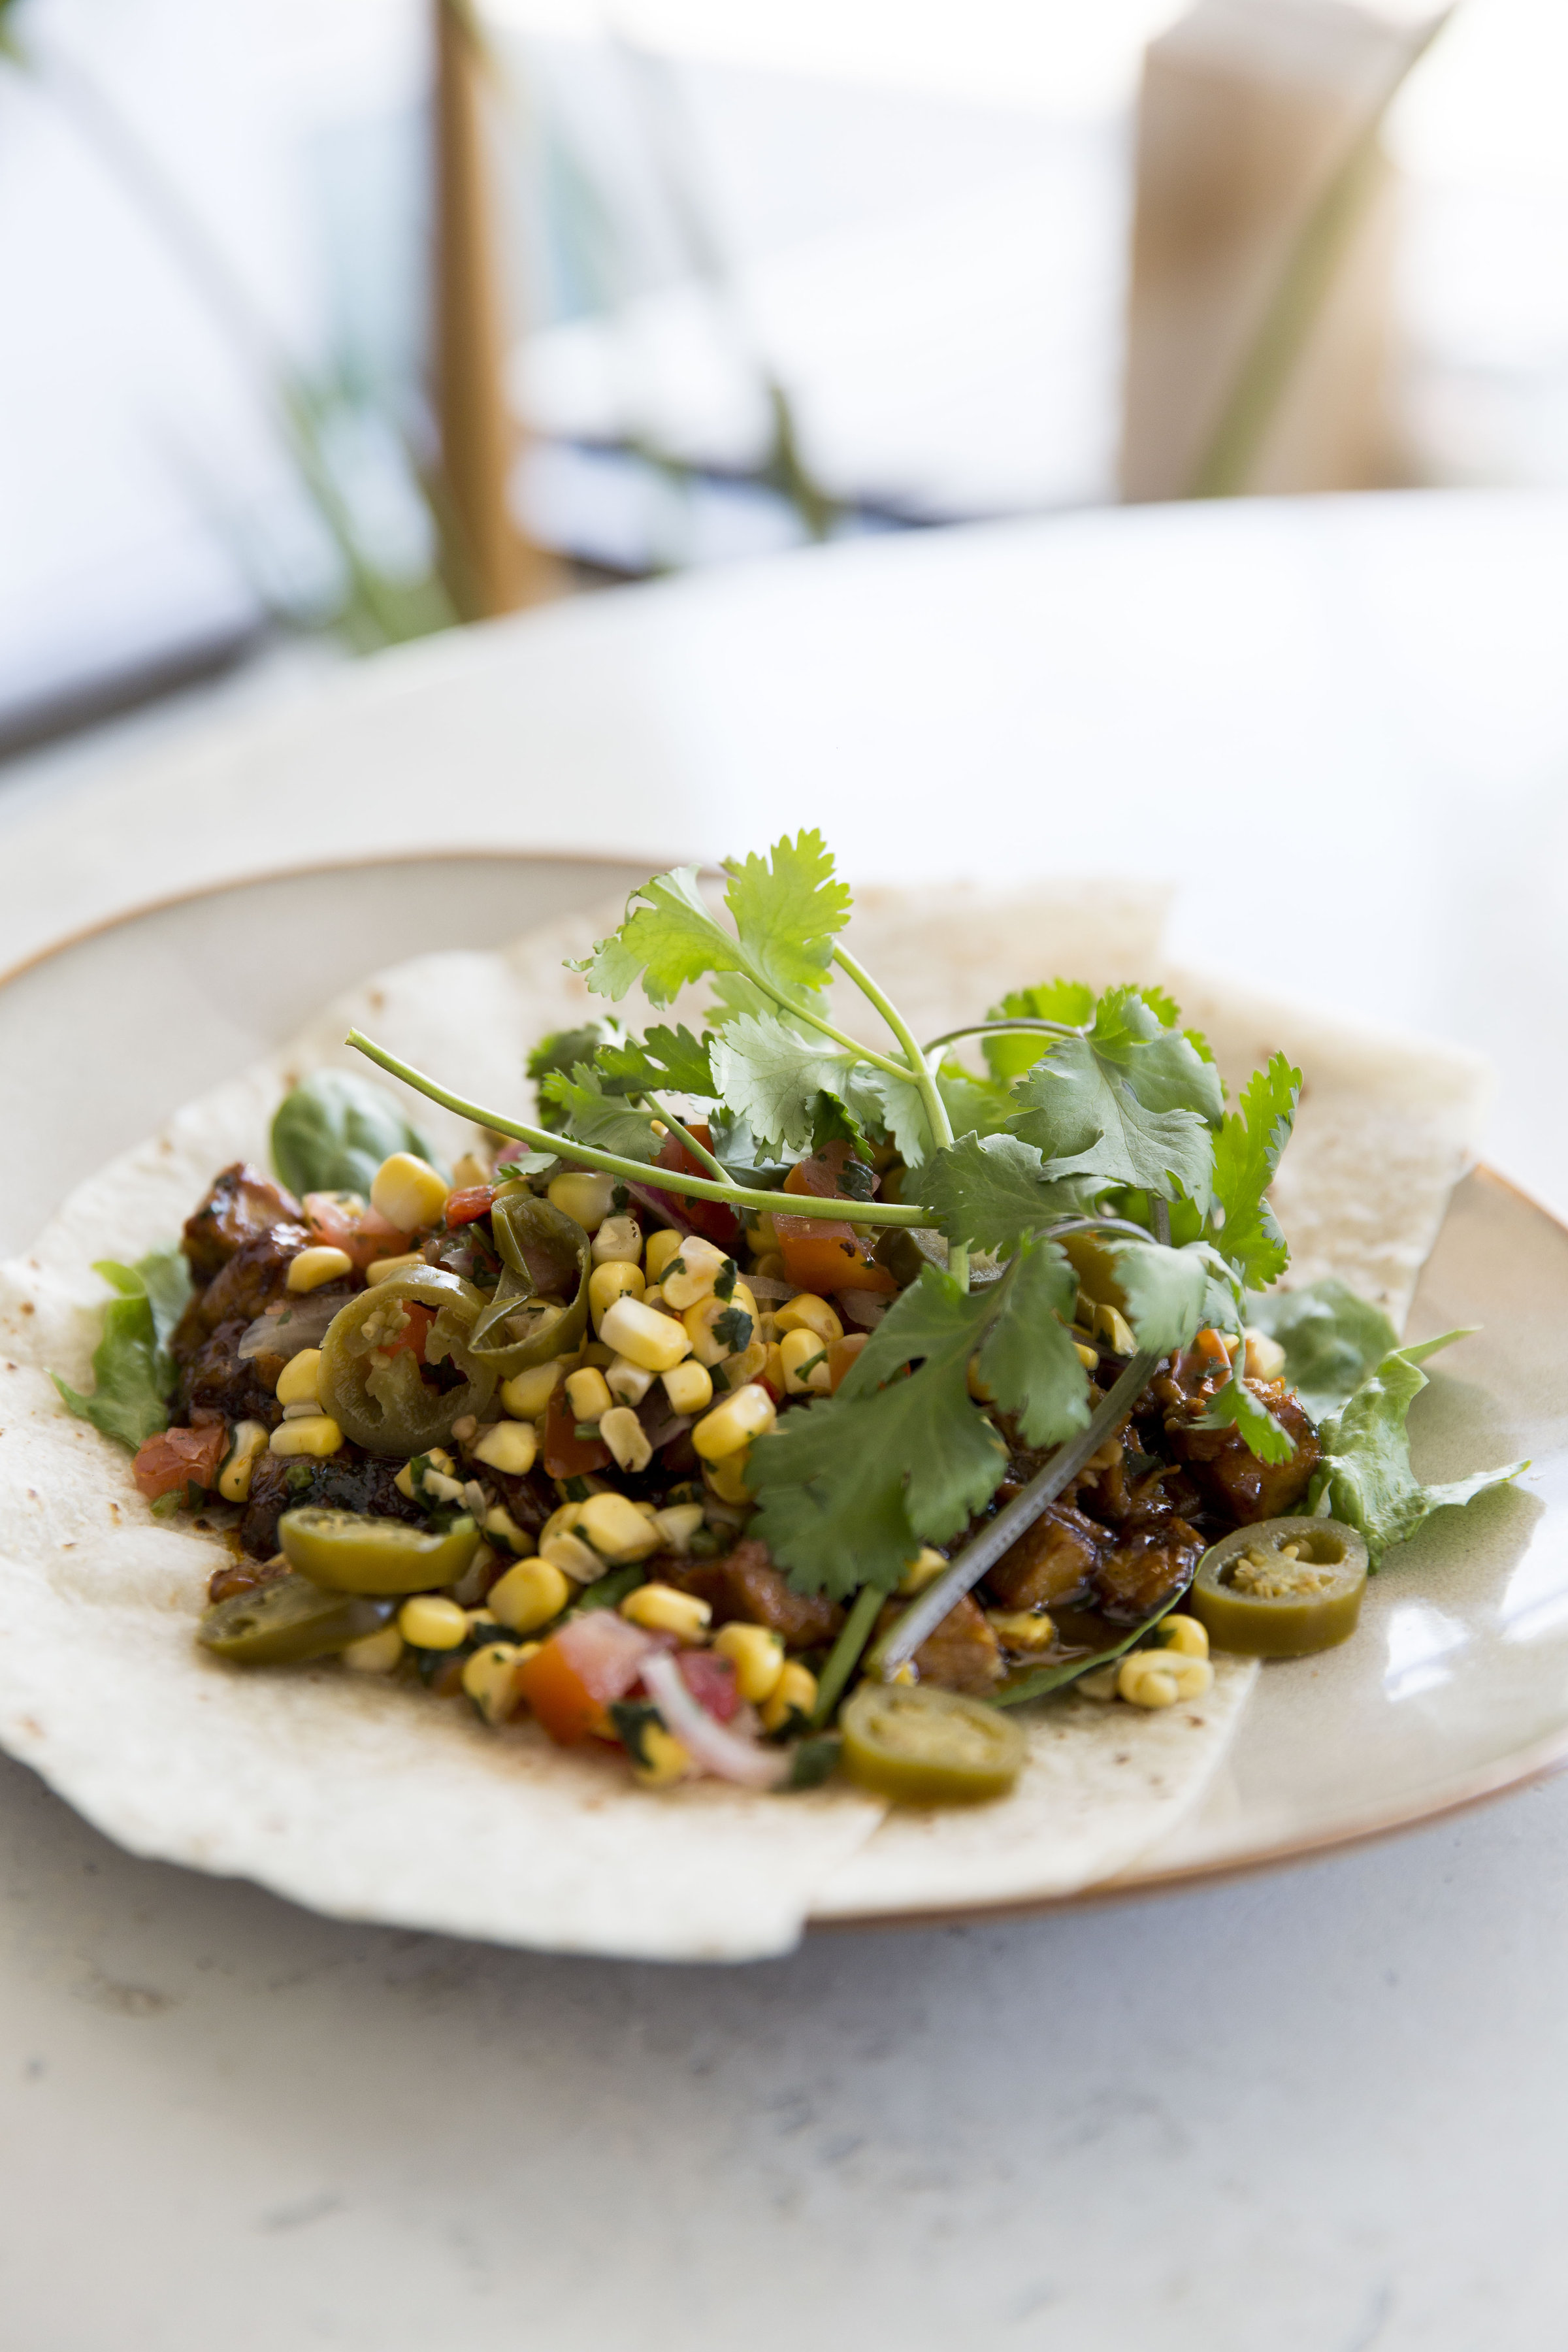 Pulled pork with charred corn, beans and jalapeño